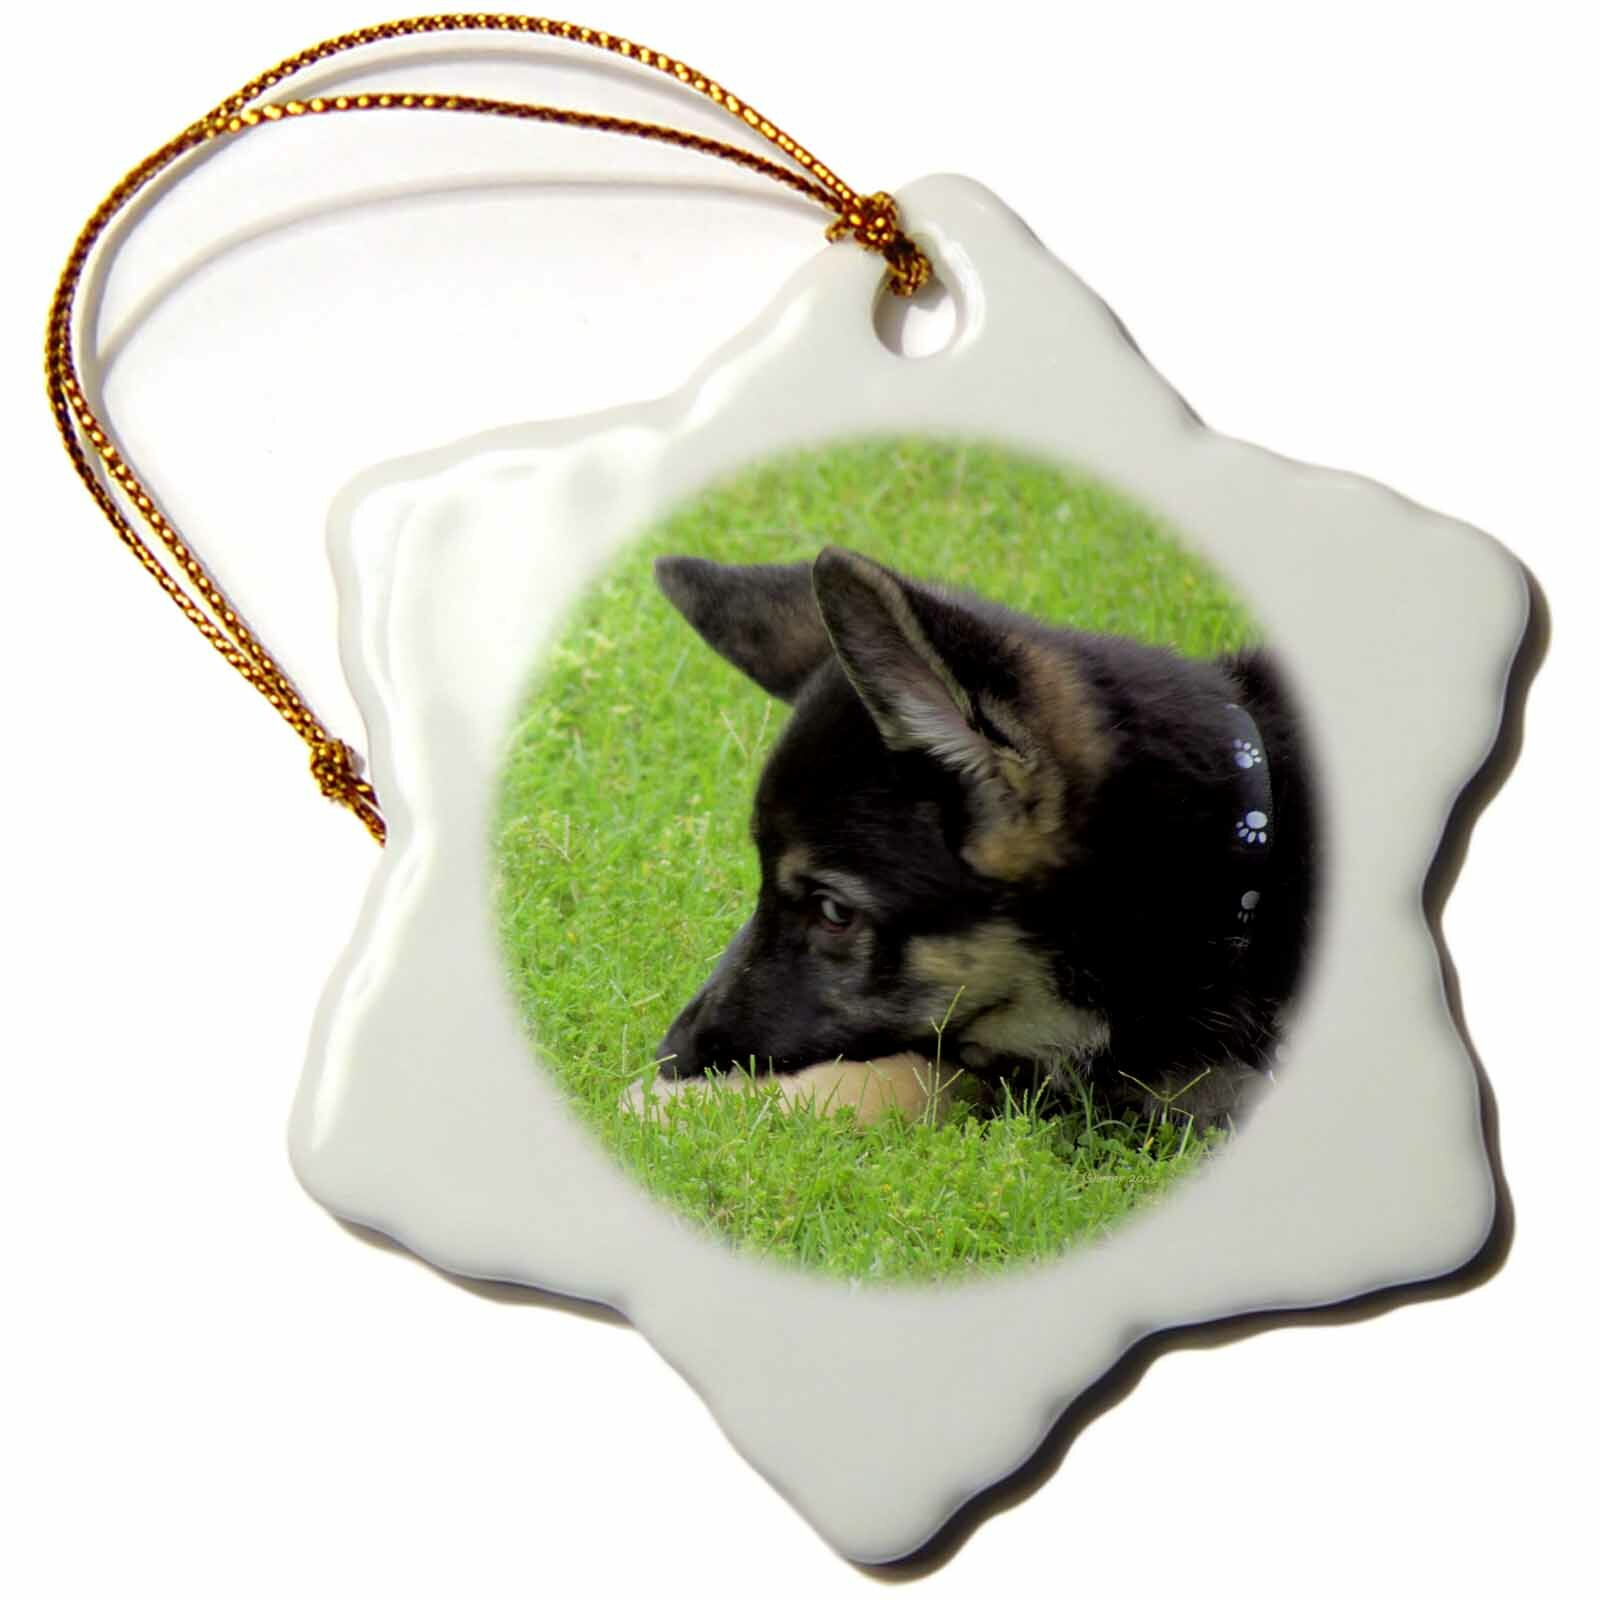 The Holiday Aisle German Shepherd Puppy Holiday Shaped Ornament Wayfair